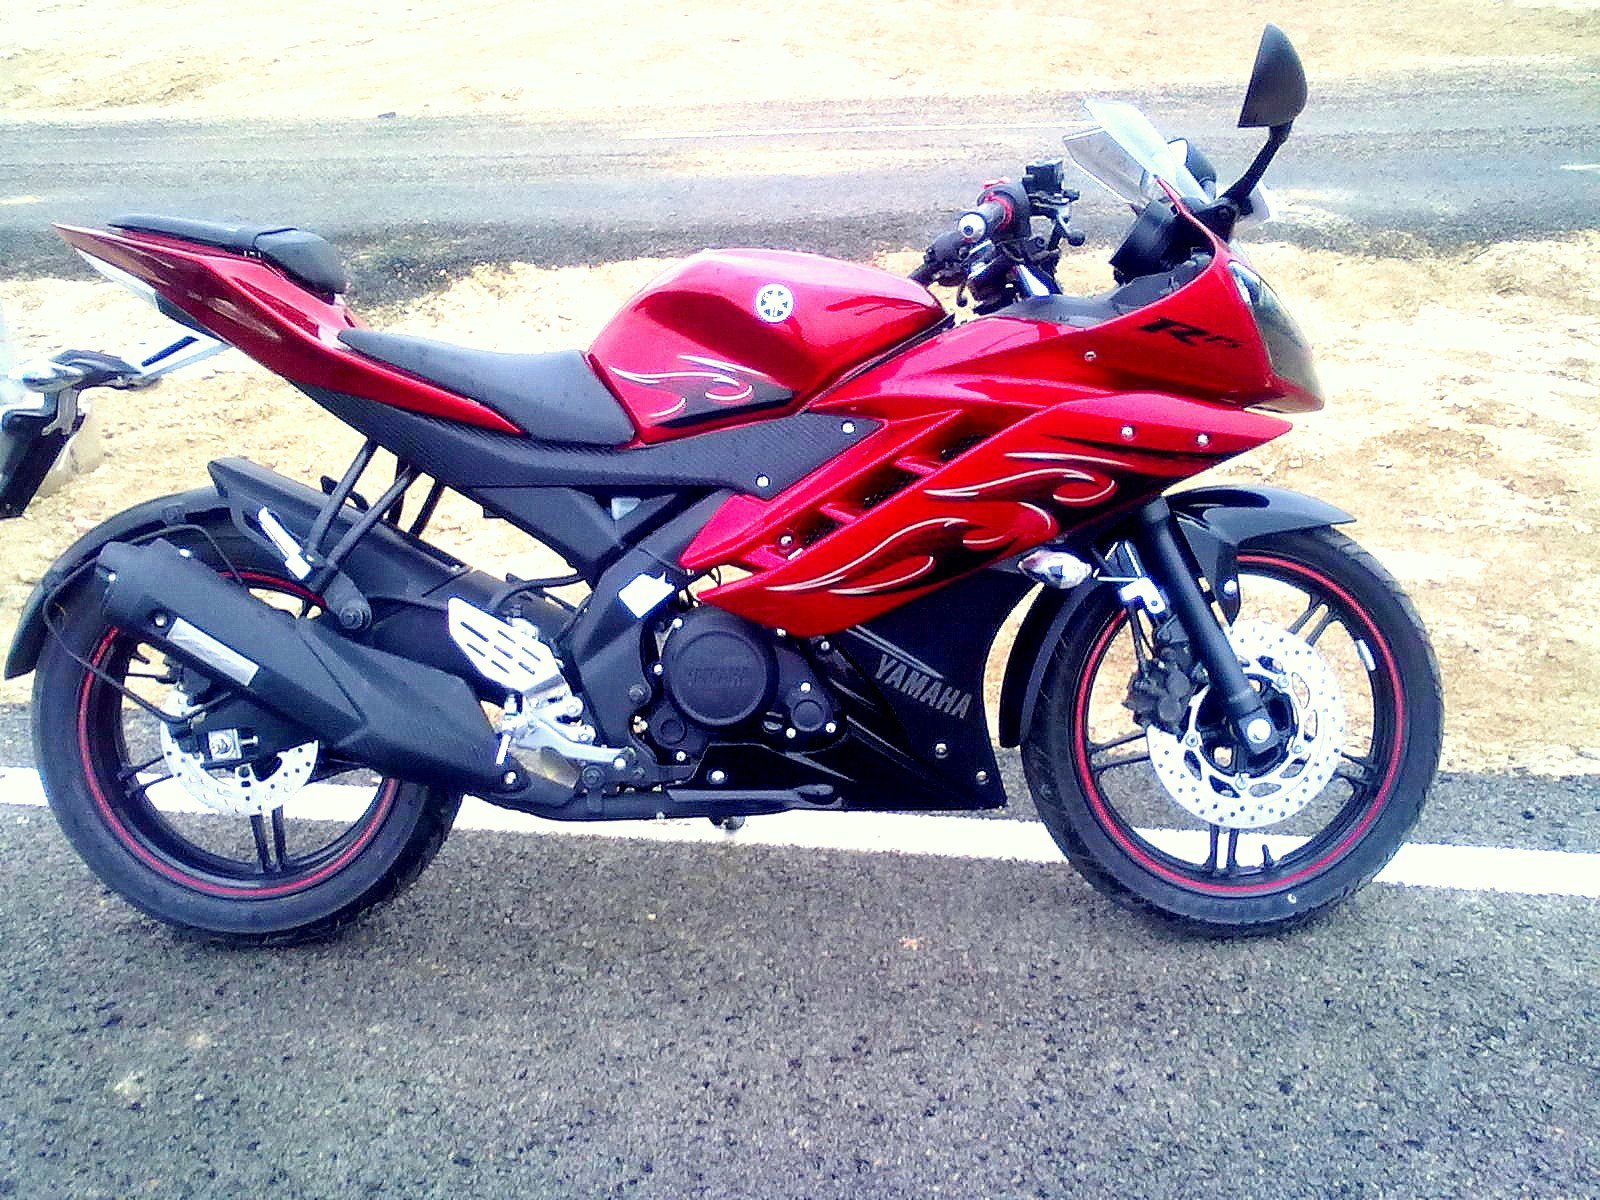 R15 Yamaha Wallpaper The gallery for -->...